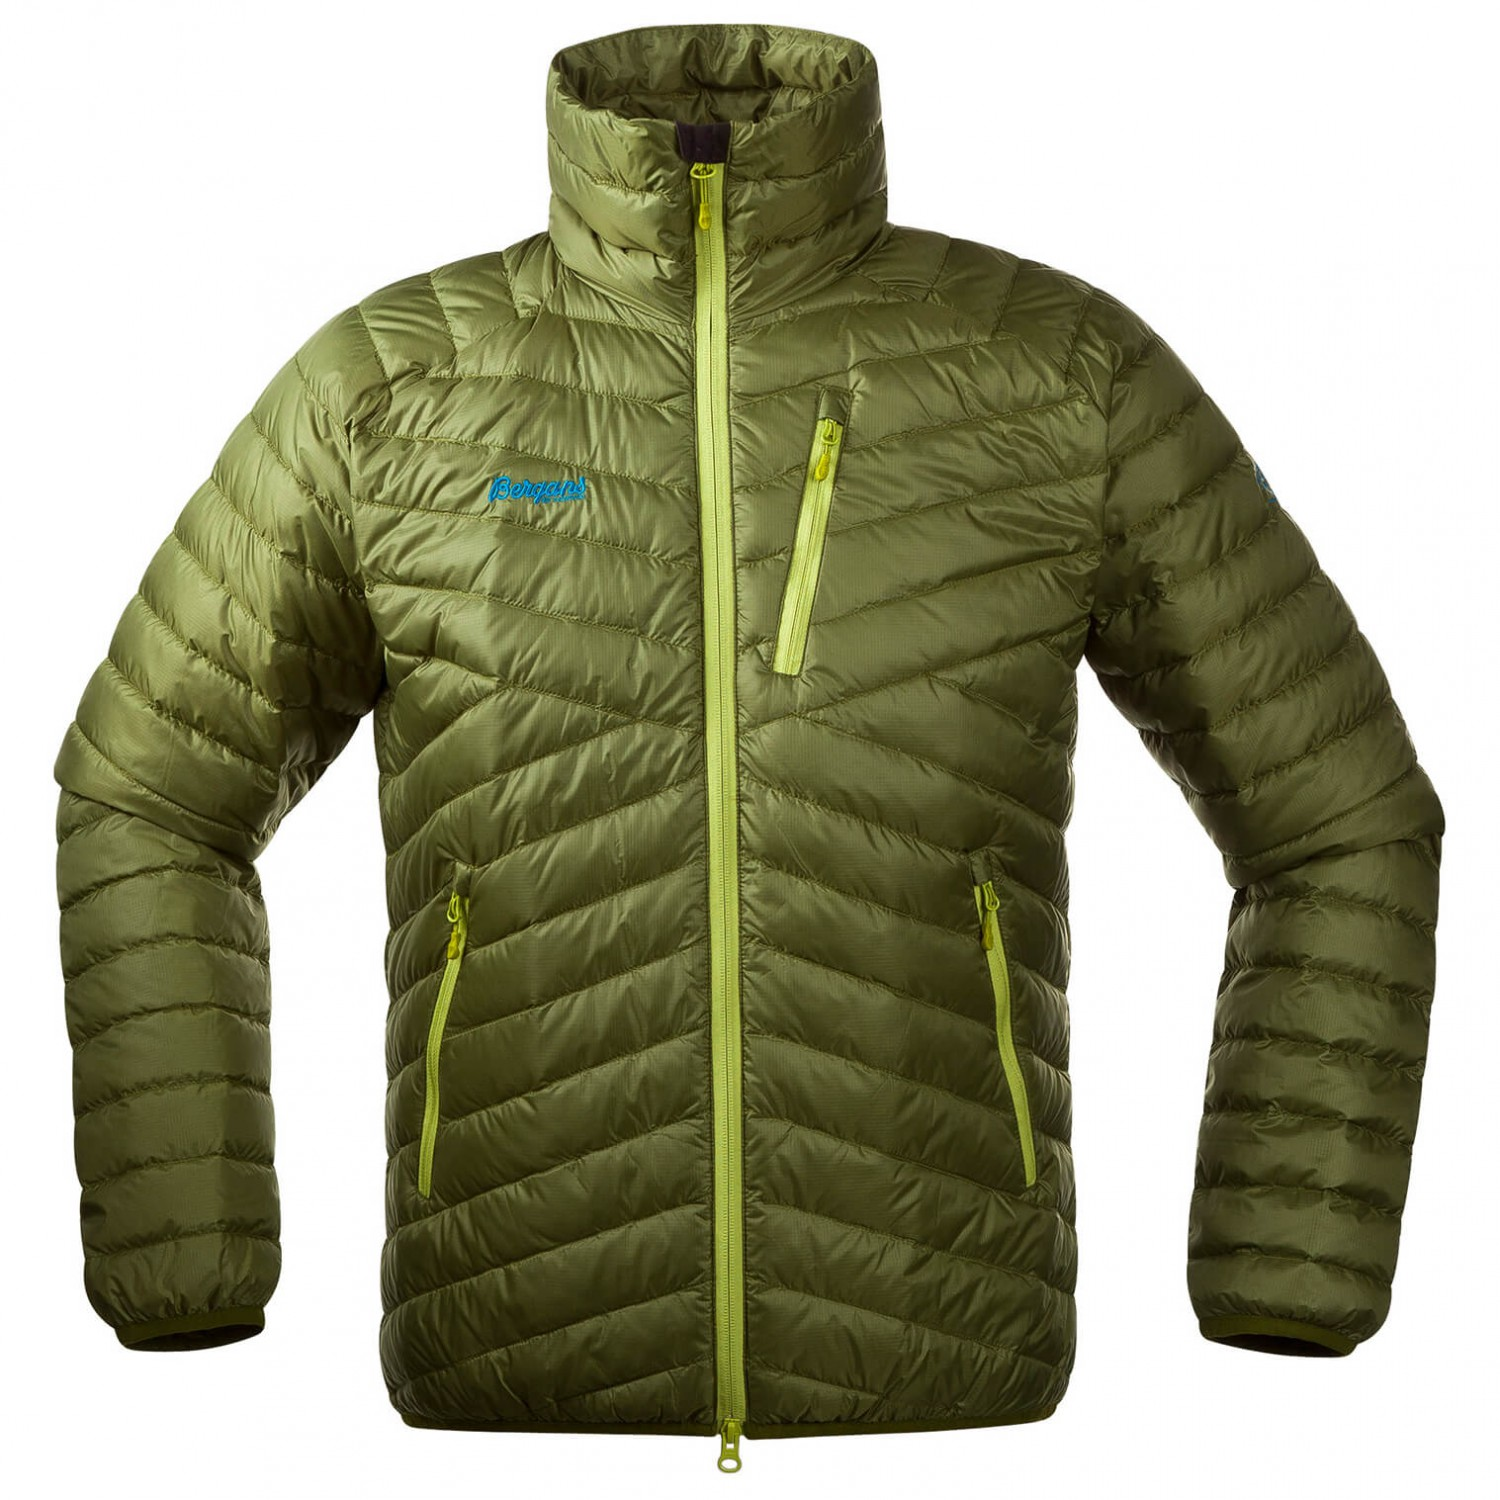 Bergans' Slingsbytind jacket review: Is it right for you?